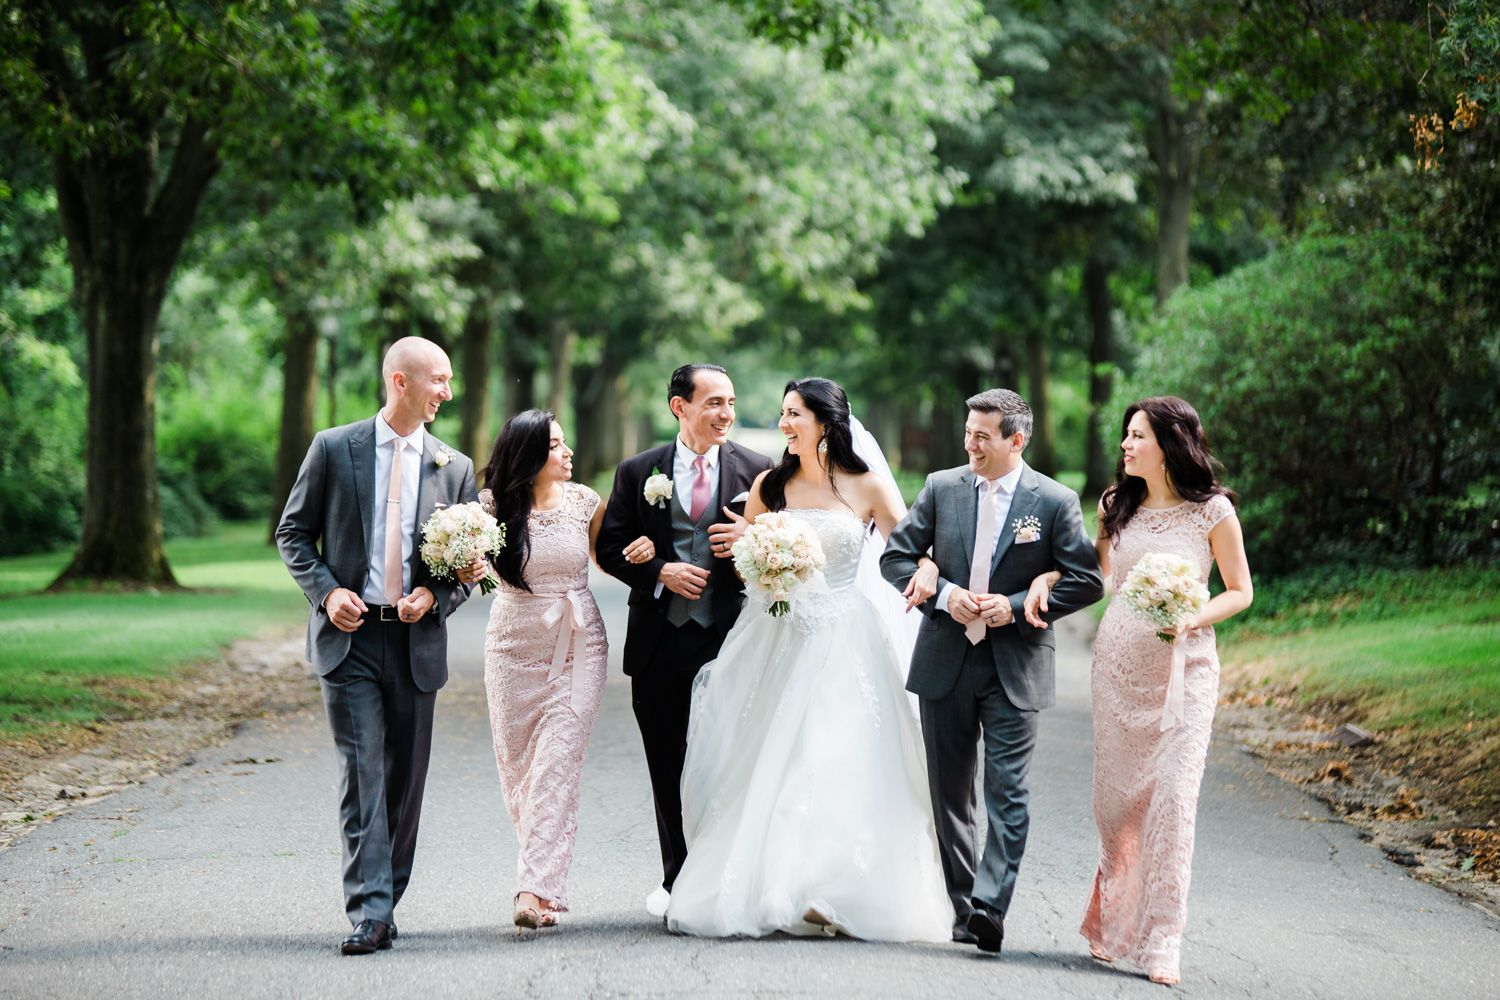 Wedding party wearing blush lace and grey at Skylands Manor